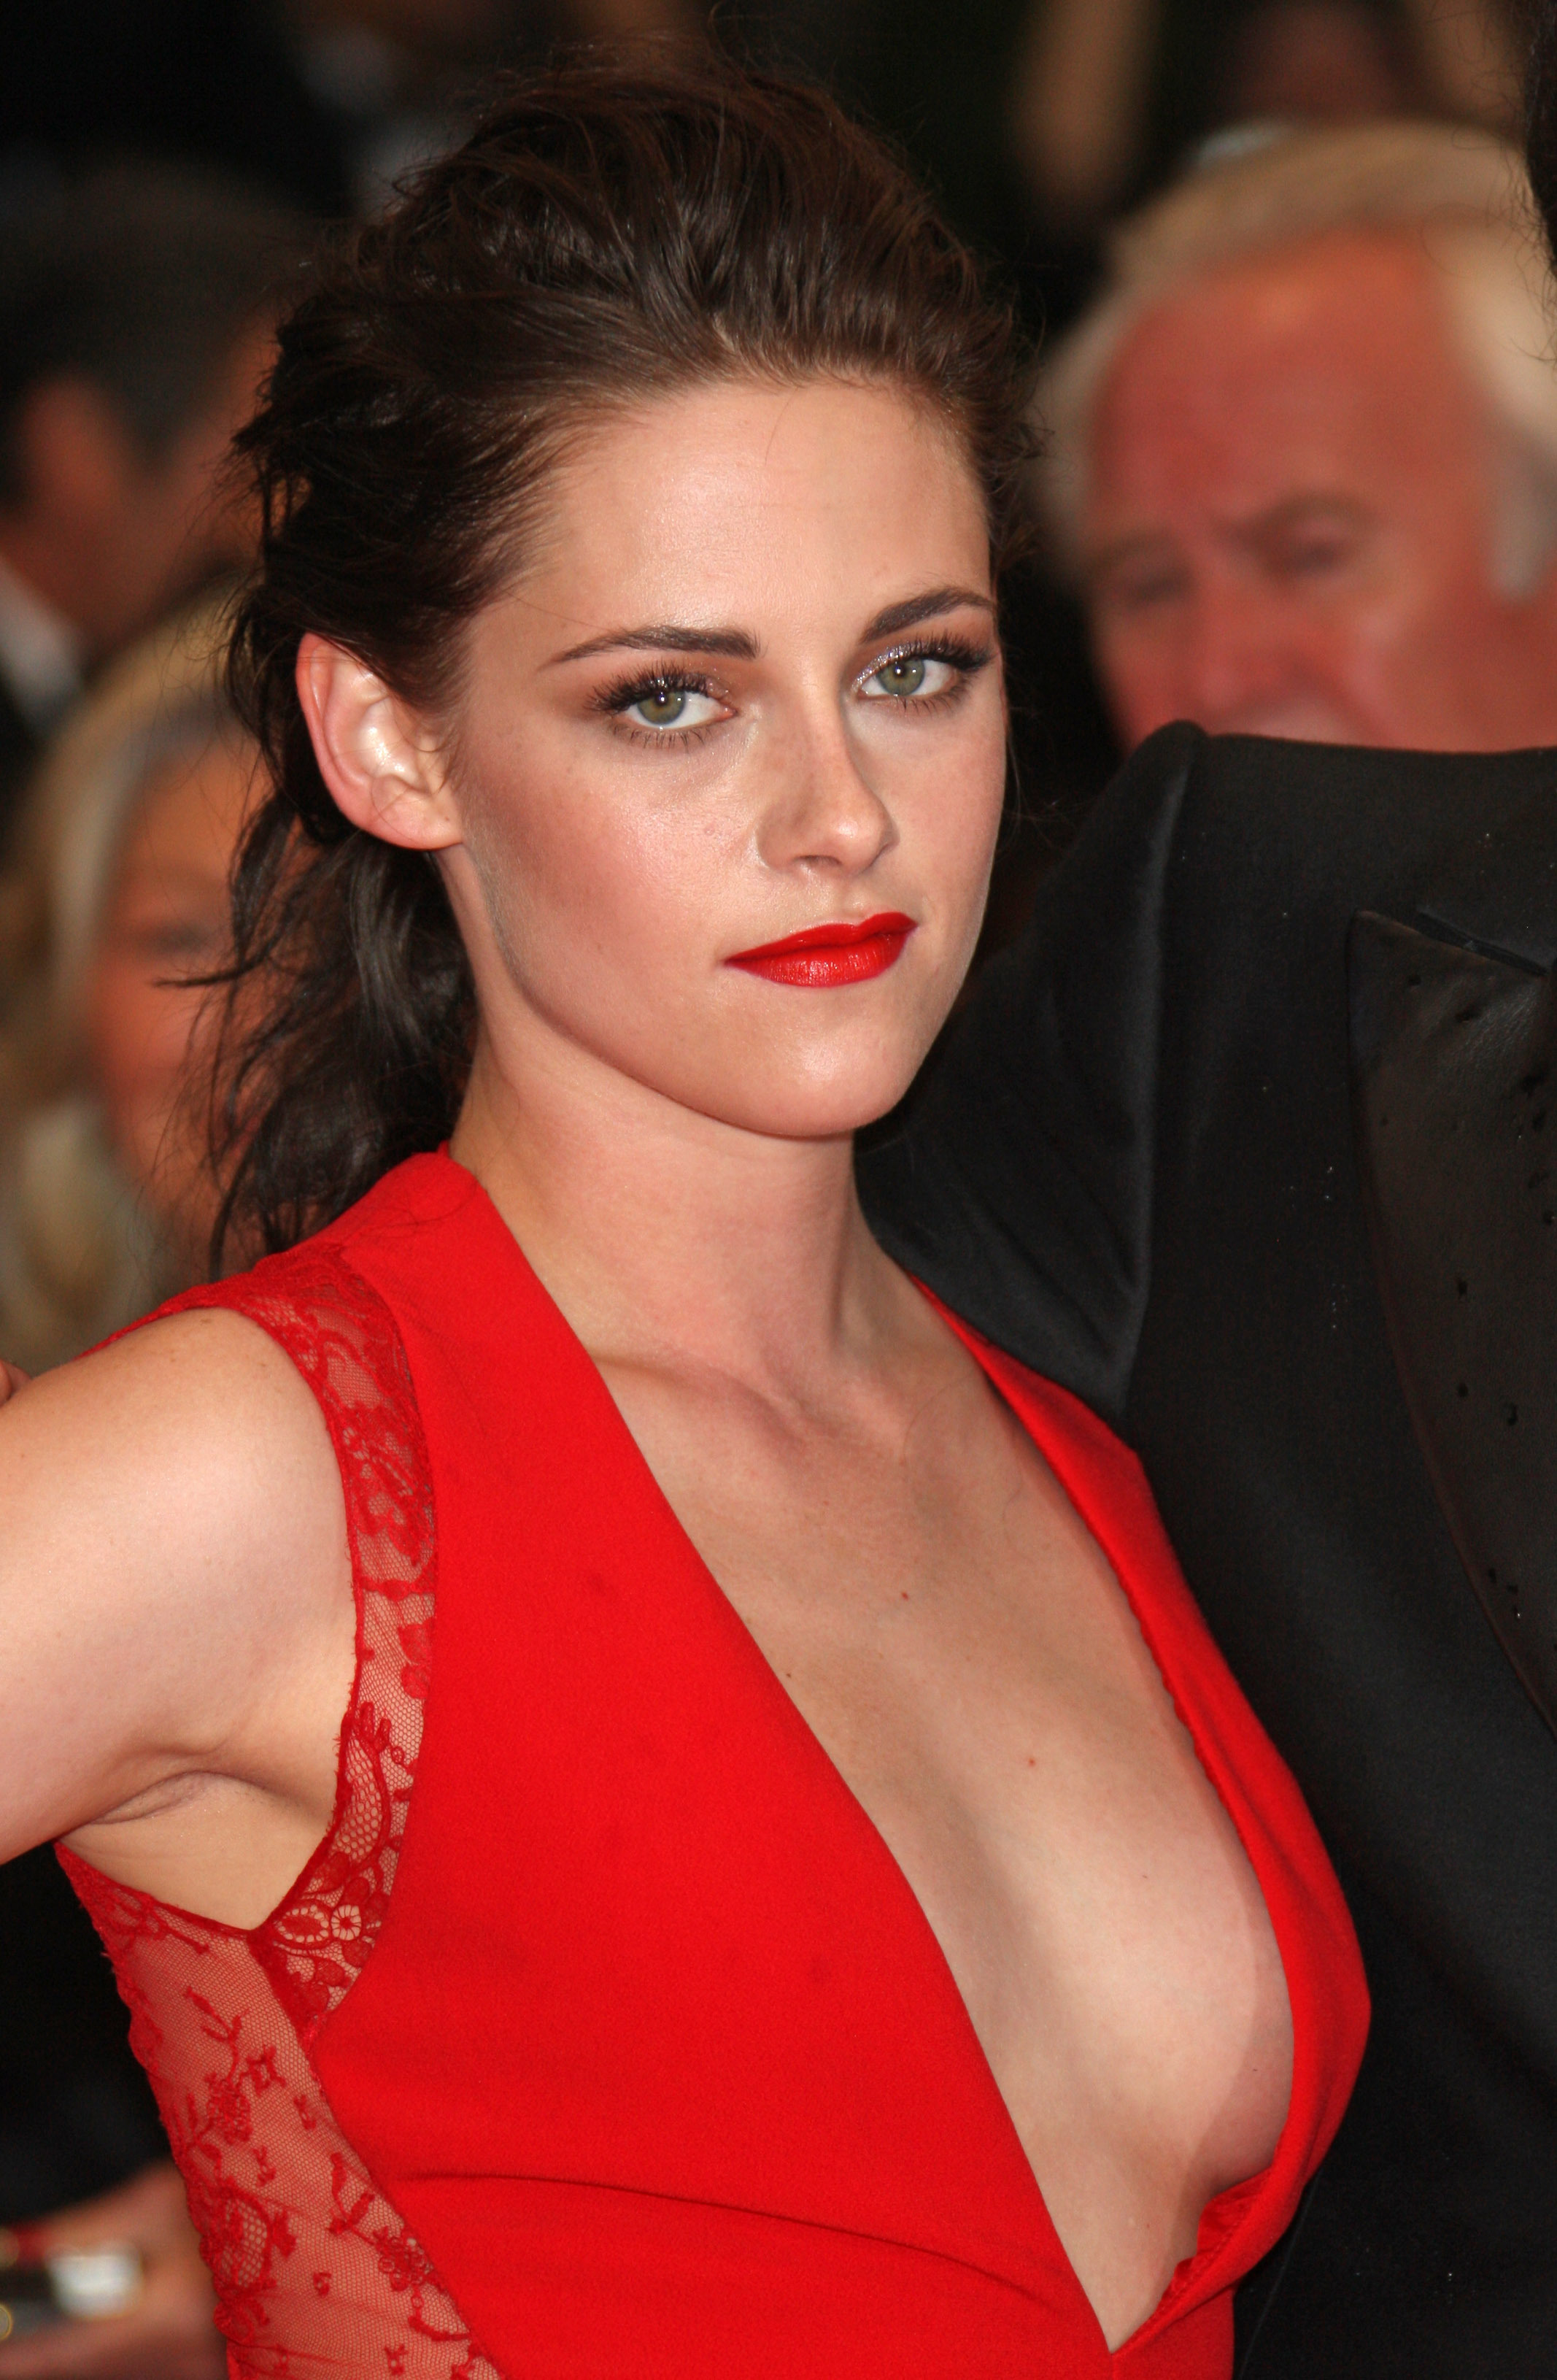 Kristen Stewart Almost Suffers Wardrobe Malfunction at Rob Pattinson's